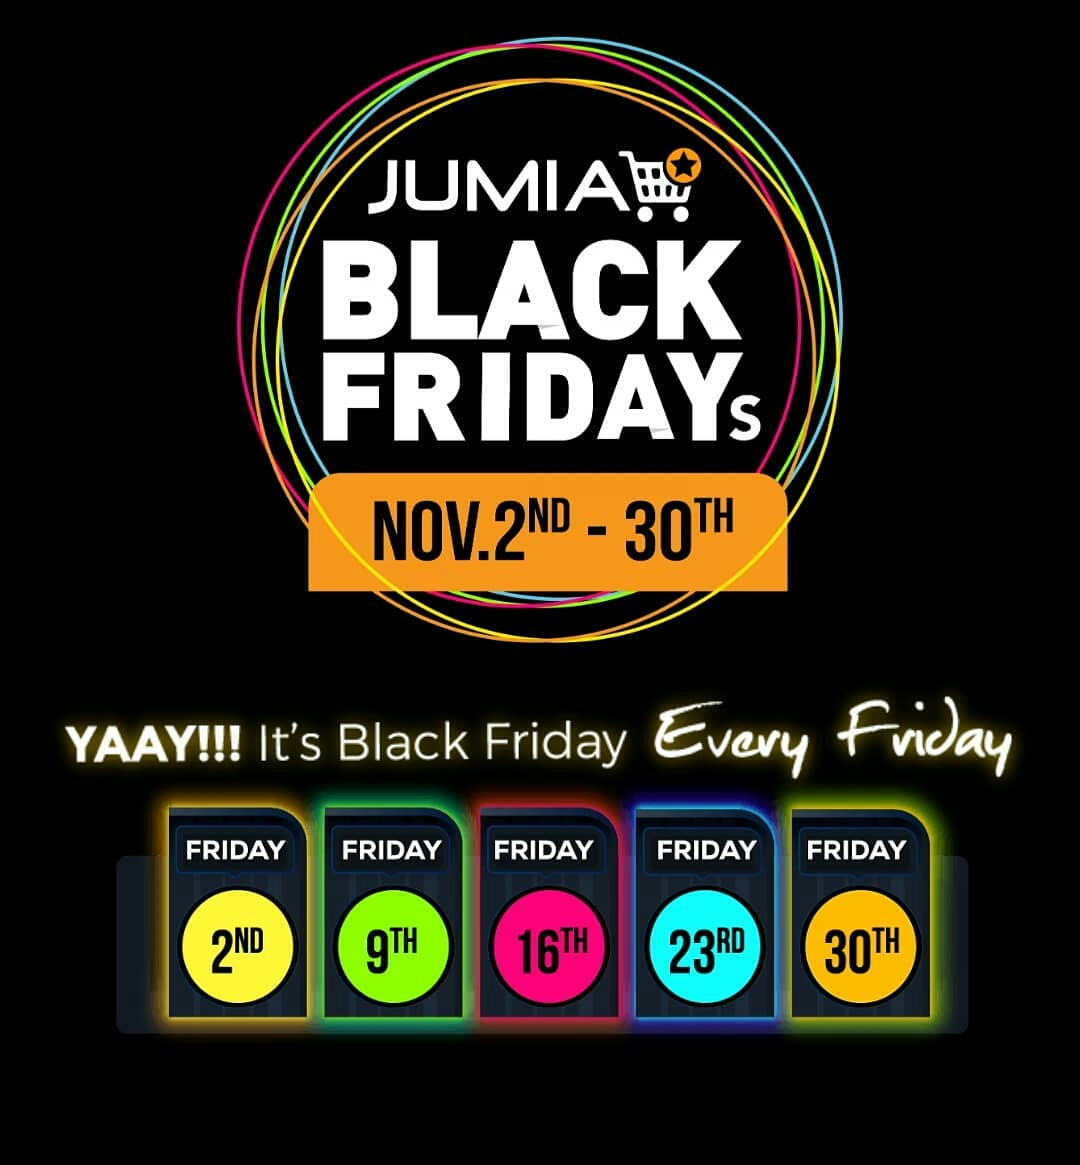 Jumia Codes To Use When Shopping This Black Friday Period From November 2nd To November 30th